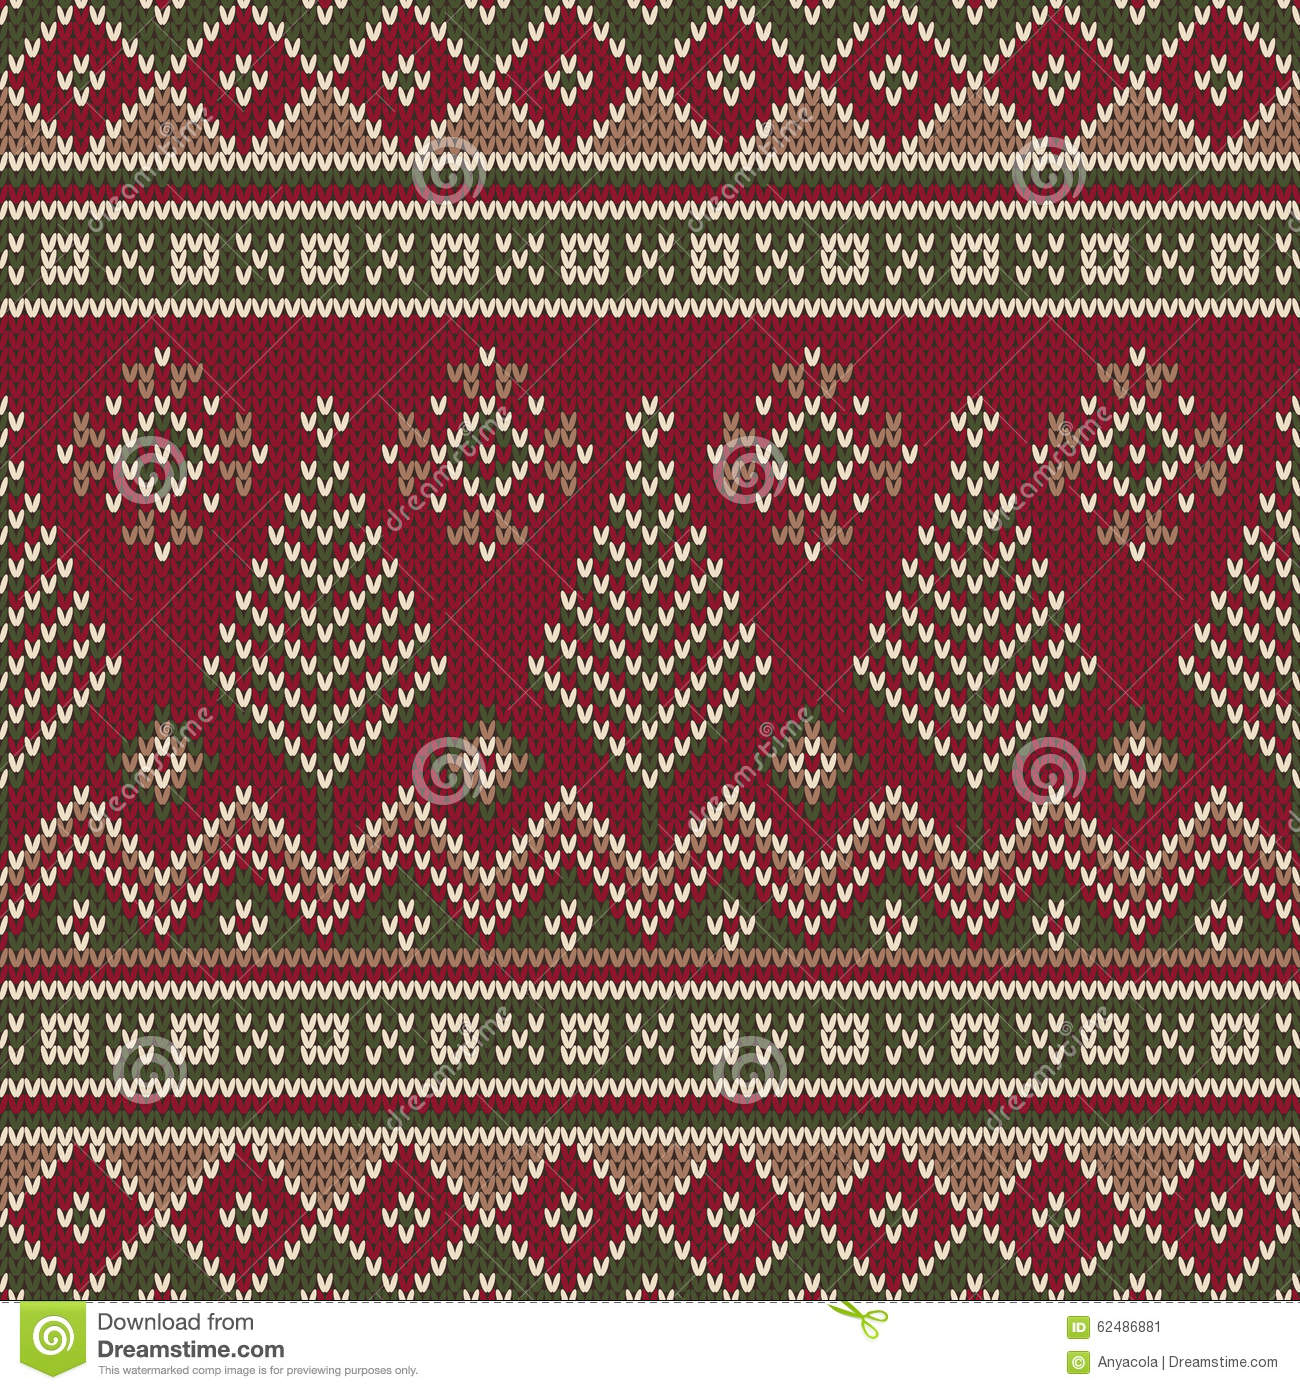 Knit Pattern Christmas Vector : Traditional Christmas Sweater Design. Seamless Knitting Pattern Stock Vector ...